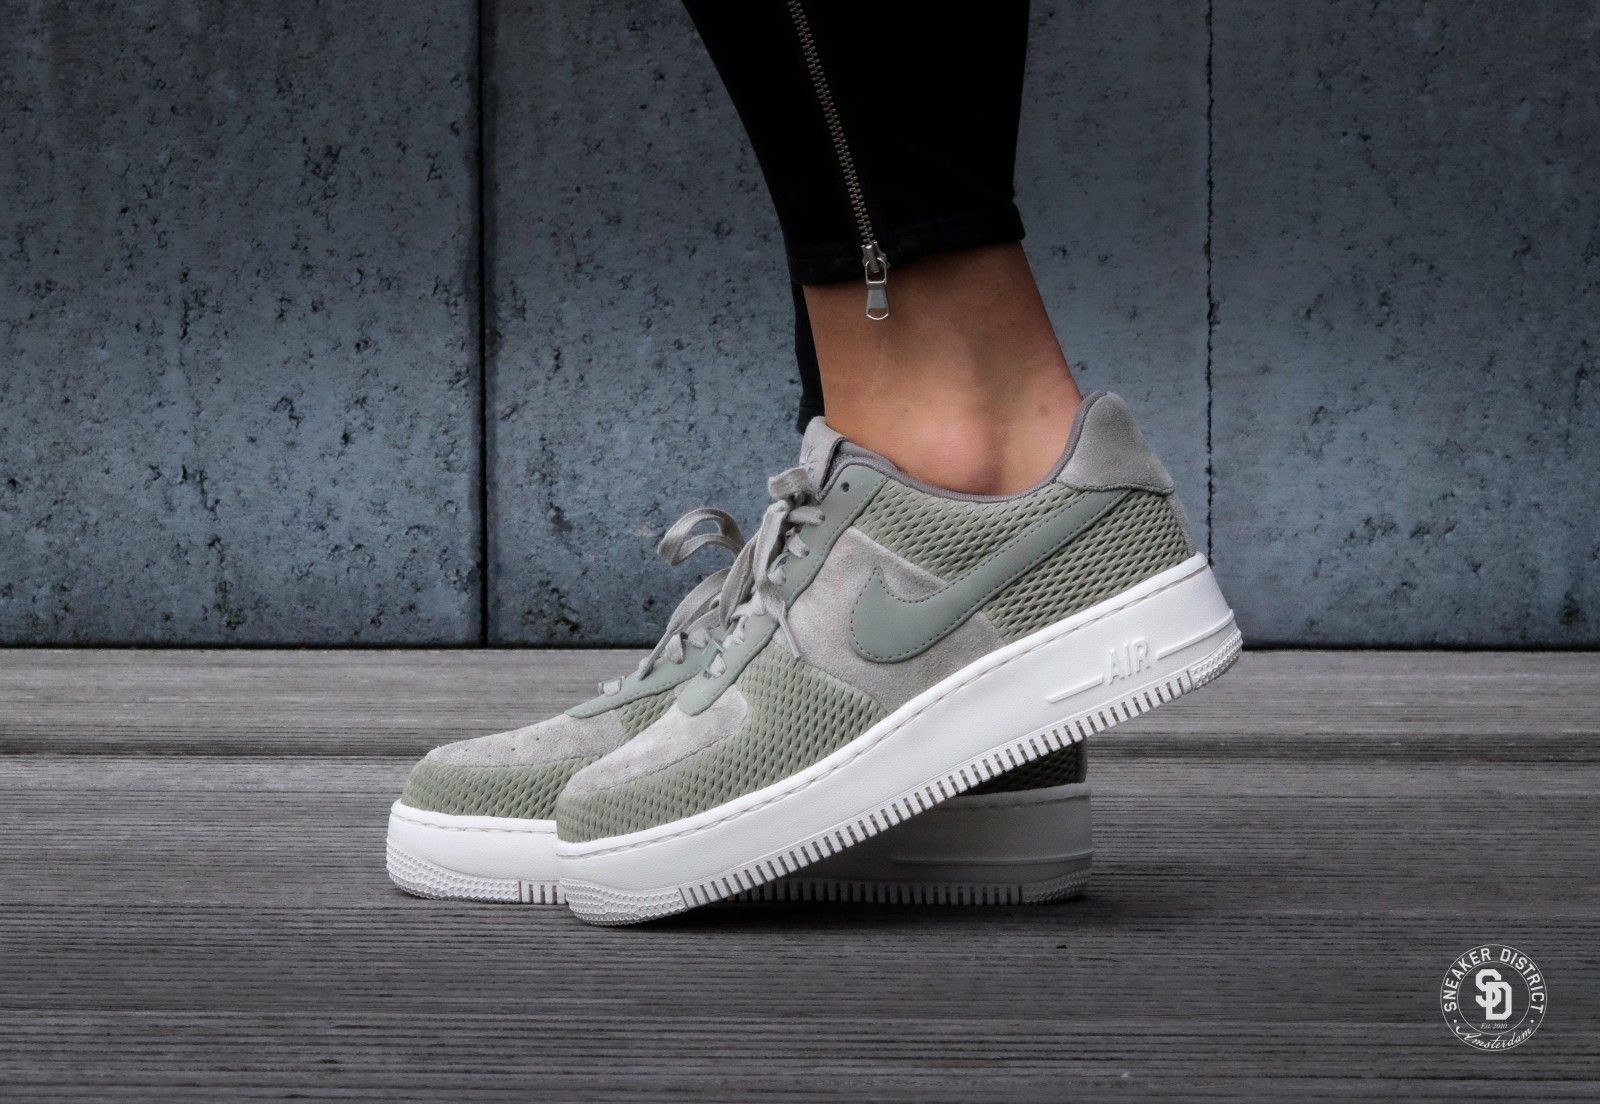 Nike WMNS Air Force 1 Upstep PRM Dark StuccoIvory 917590